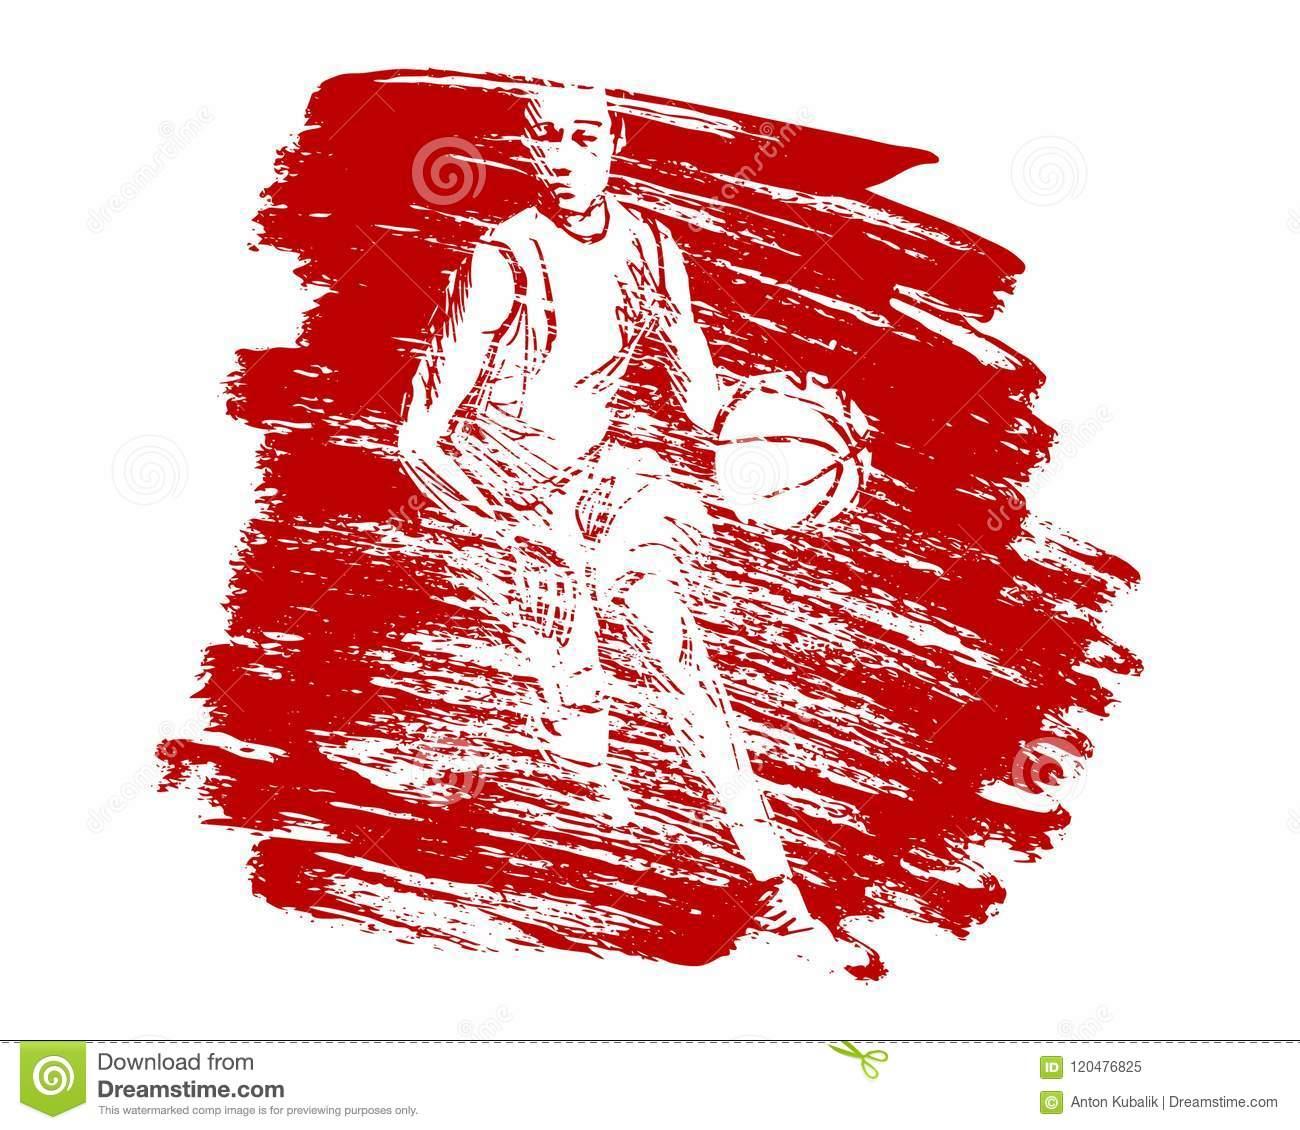 Vector grunge background with basketball player